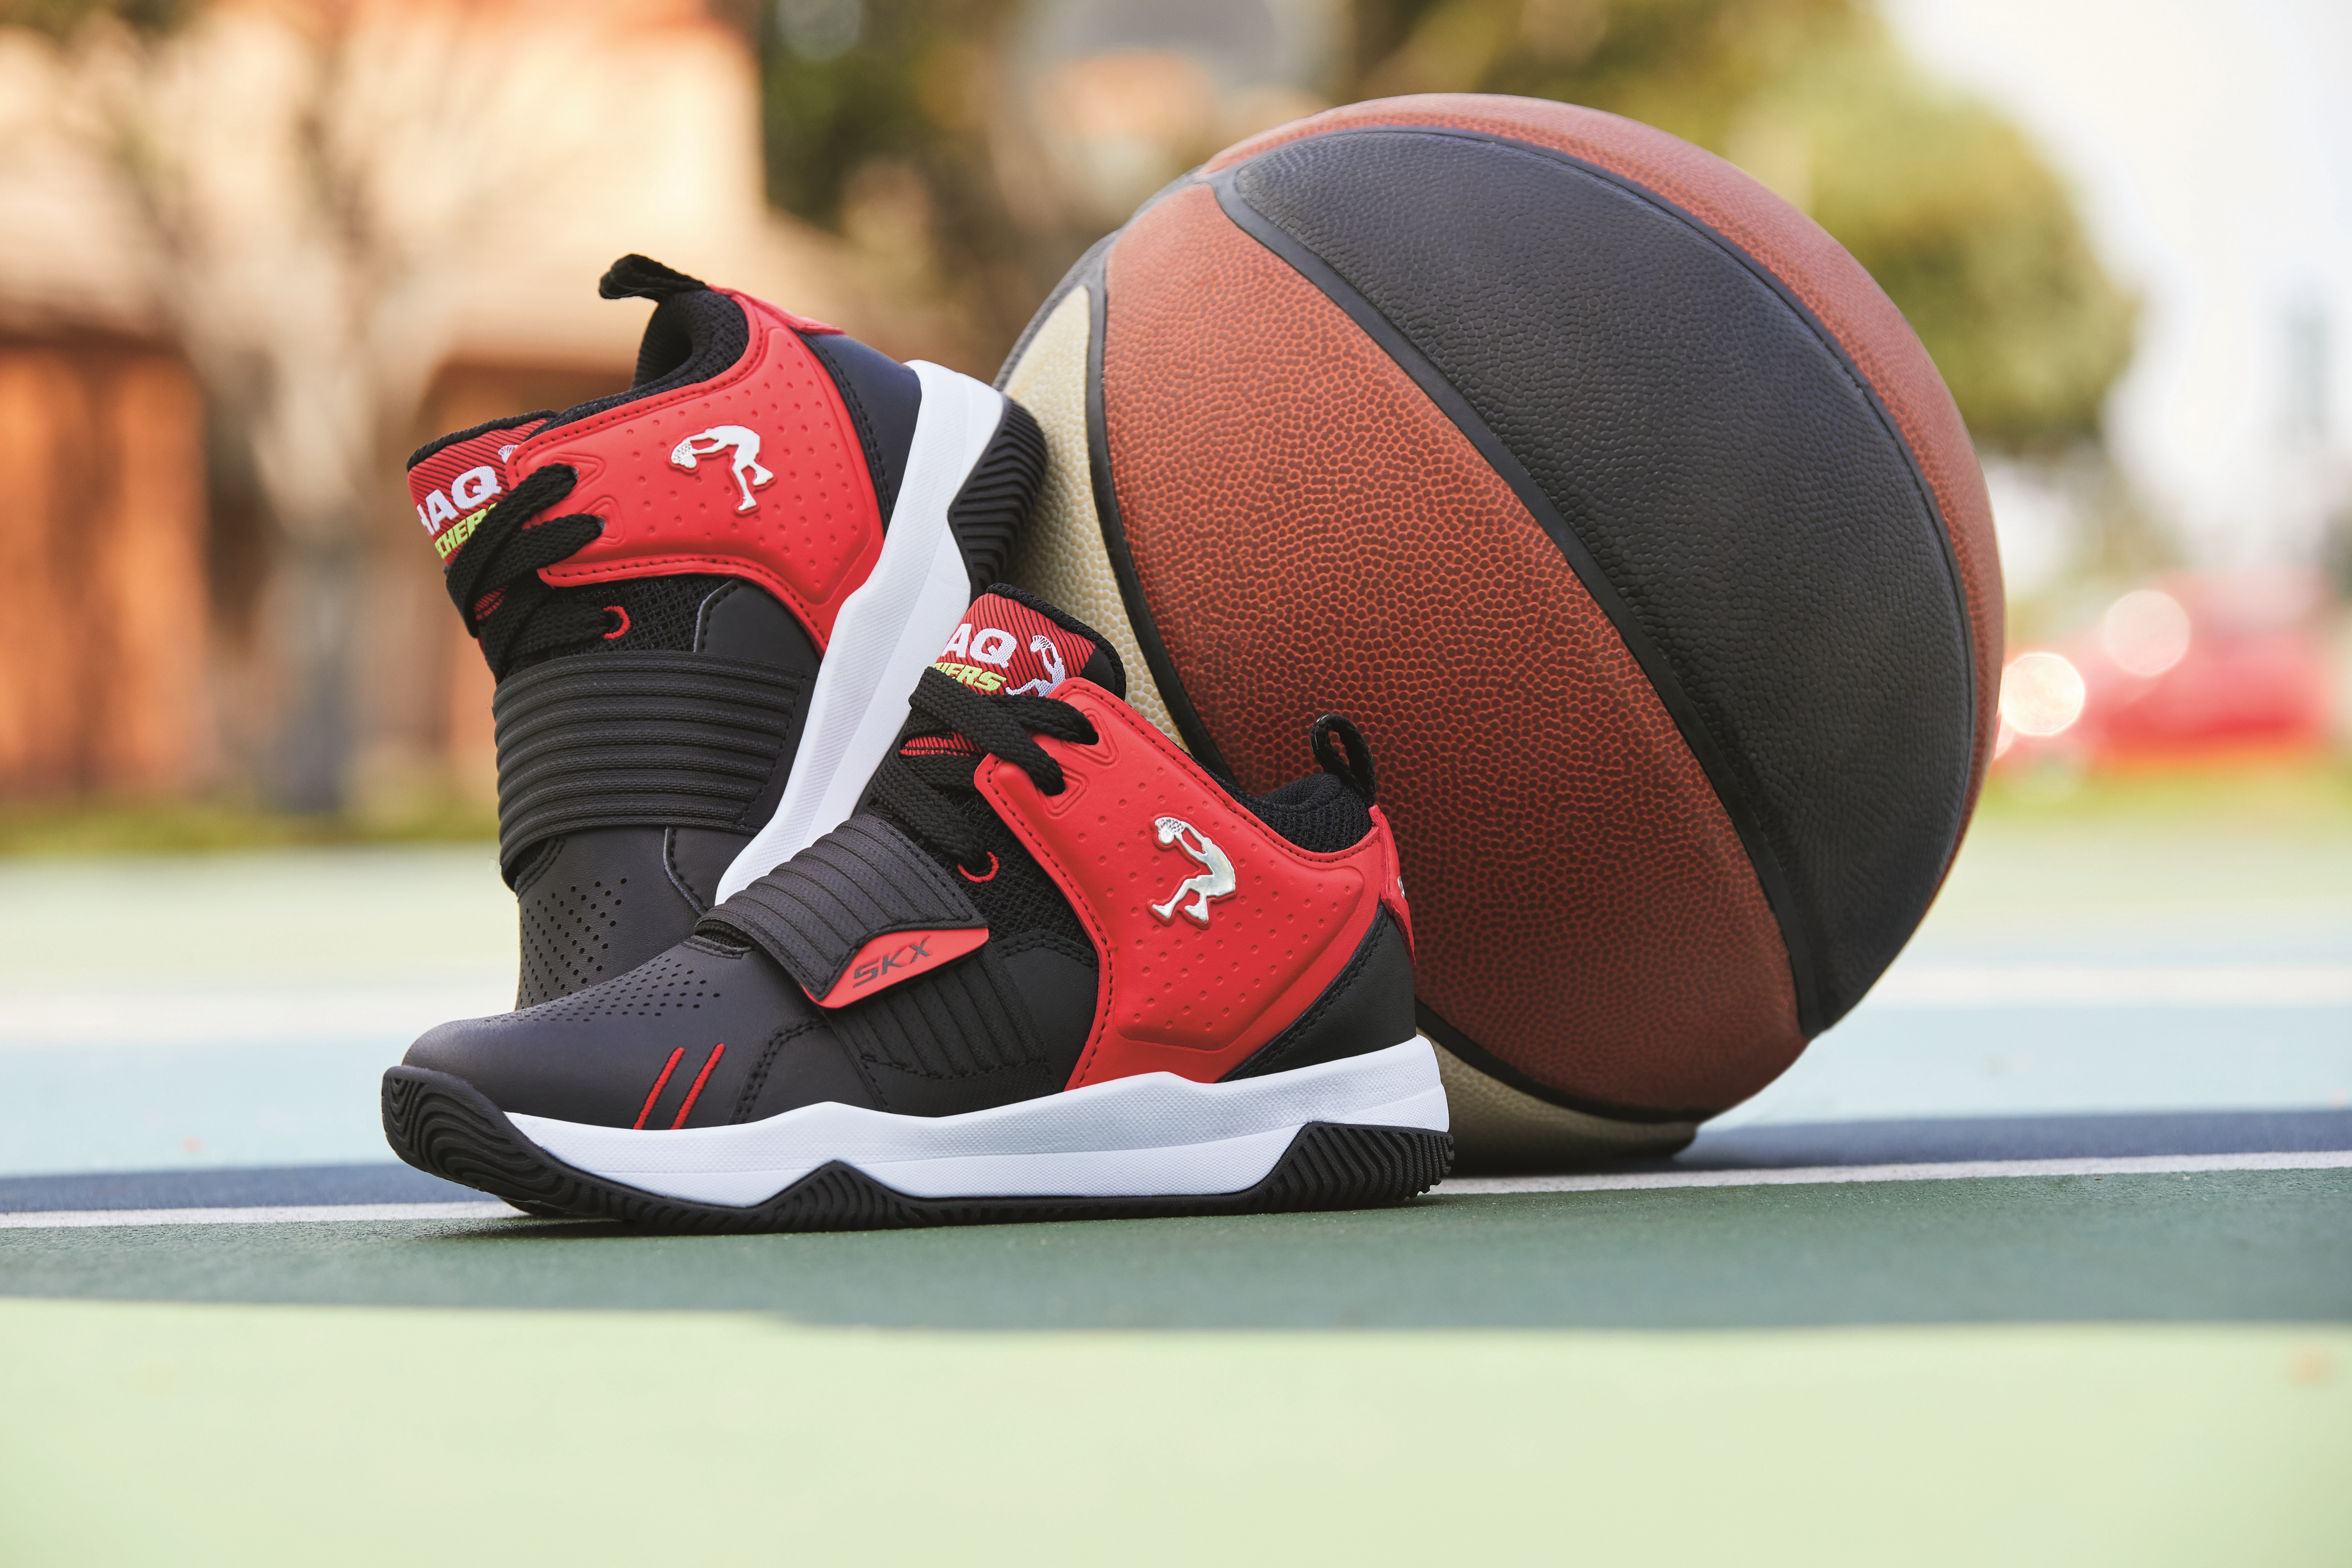 Mala fe Plano desfile  Shaq by Skechers Launches Basketball Footwear for Kids | Business Wire